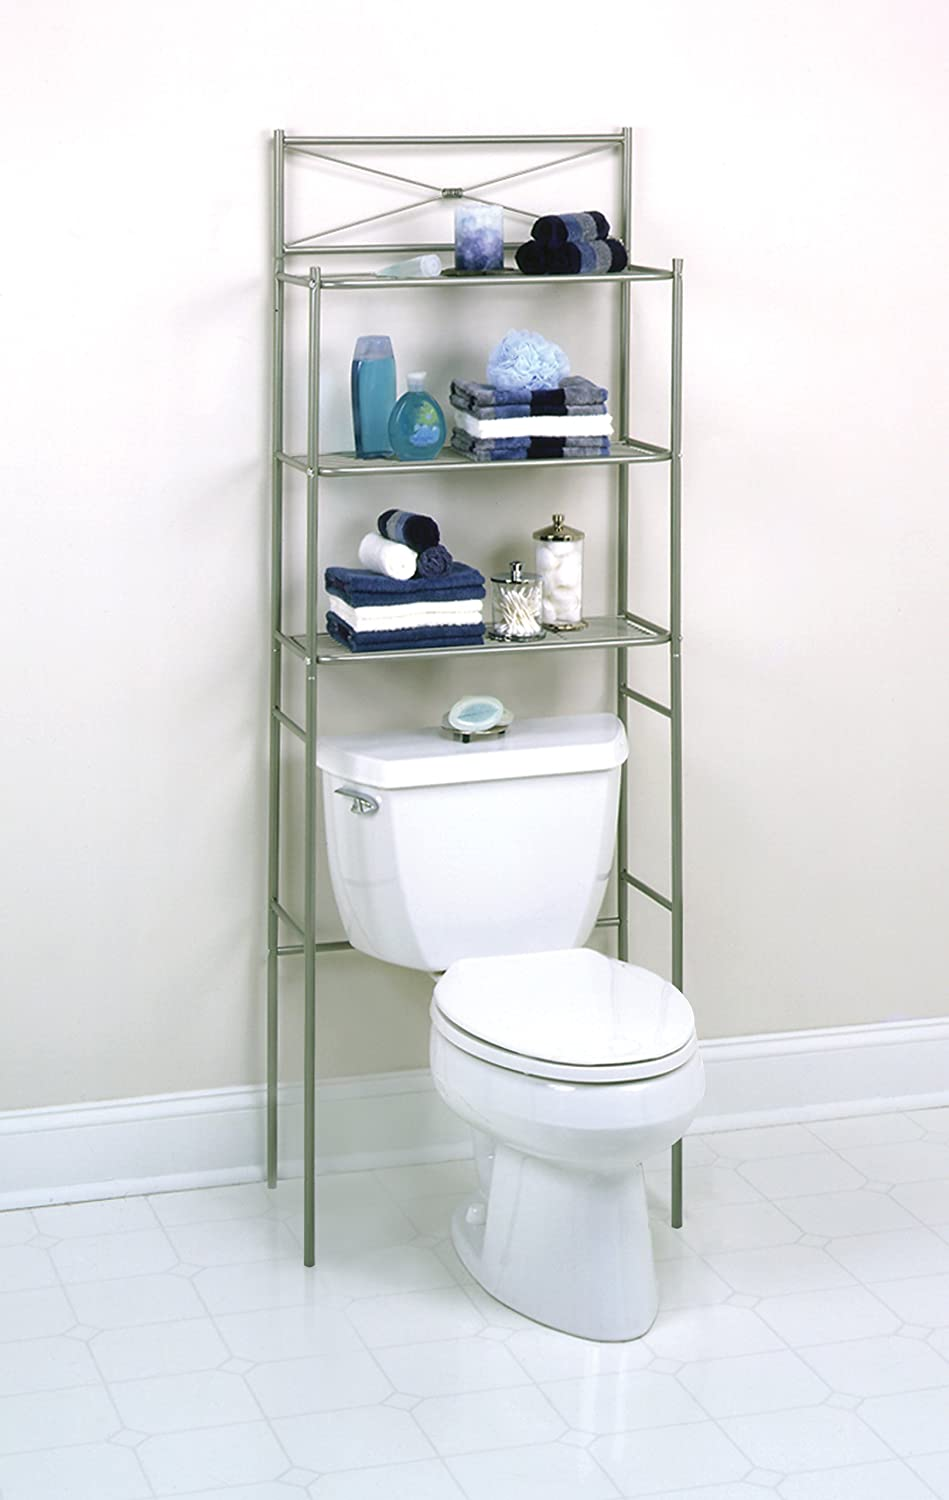 New Bathroom Storage Is Something That Most Of The People Ignore But The Bathroom Is One Of The Most Used Rooms In The House And Keeping It Organized Is Important And You Can Do This Easily With These 10 Over The Toilet Storage Ideas